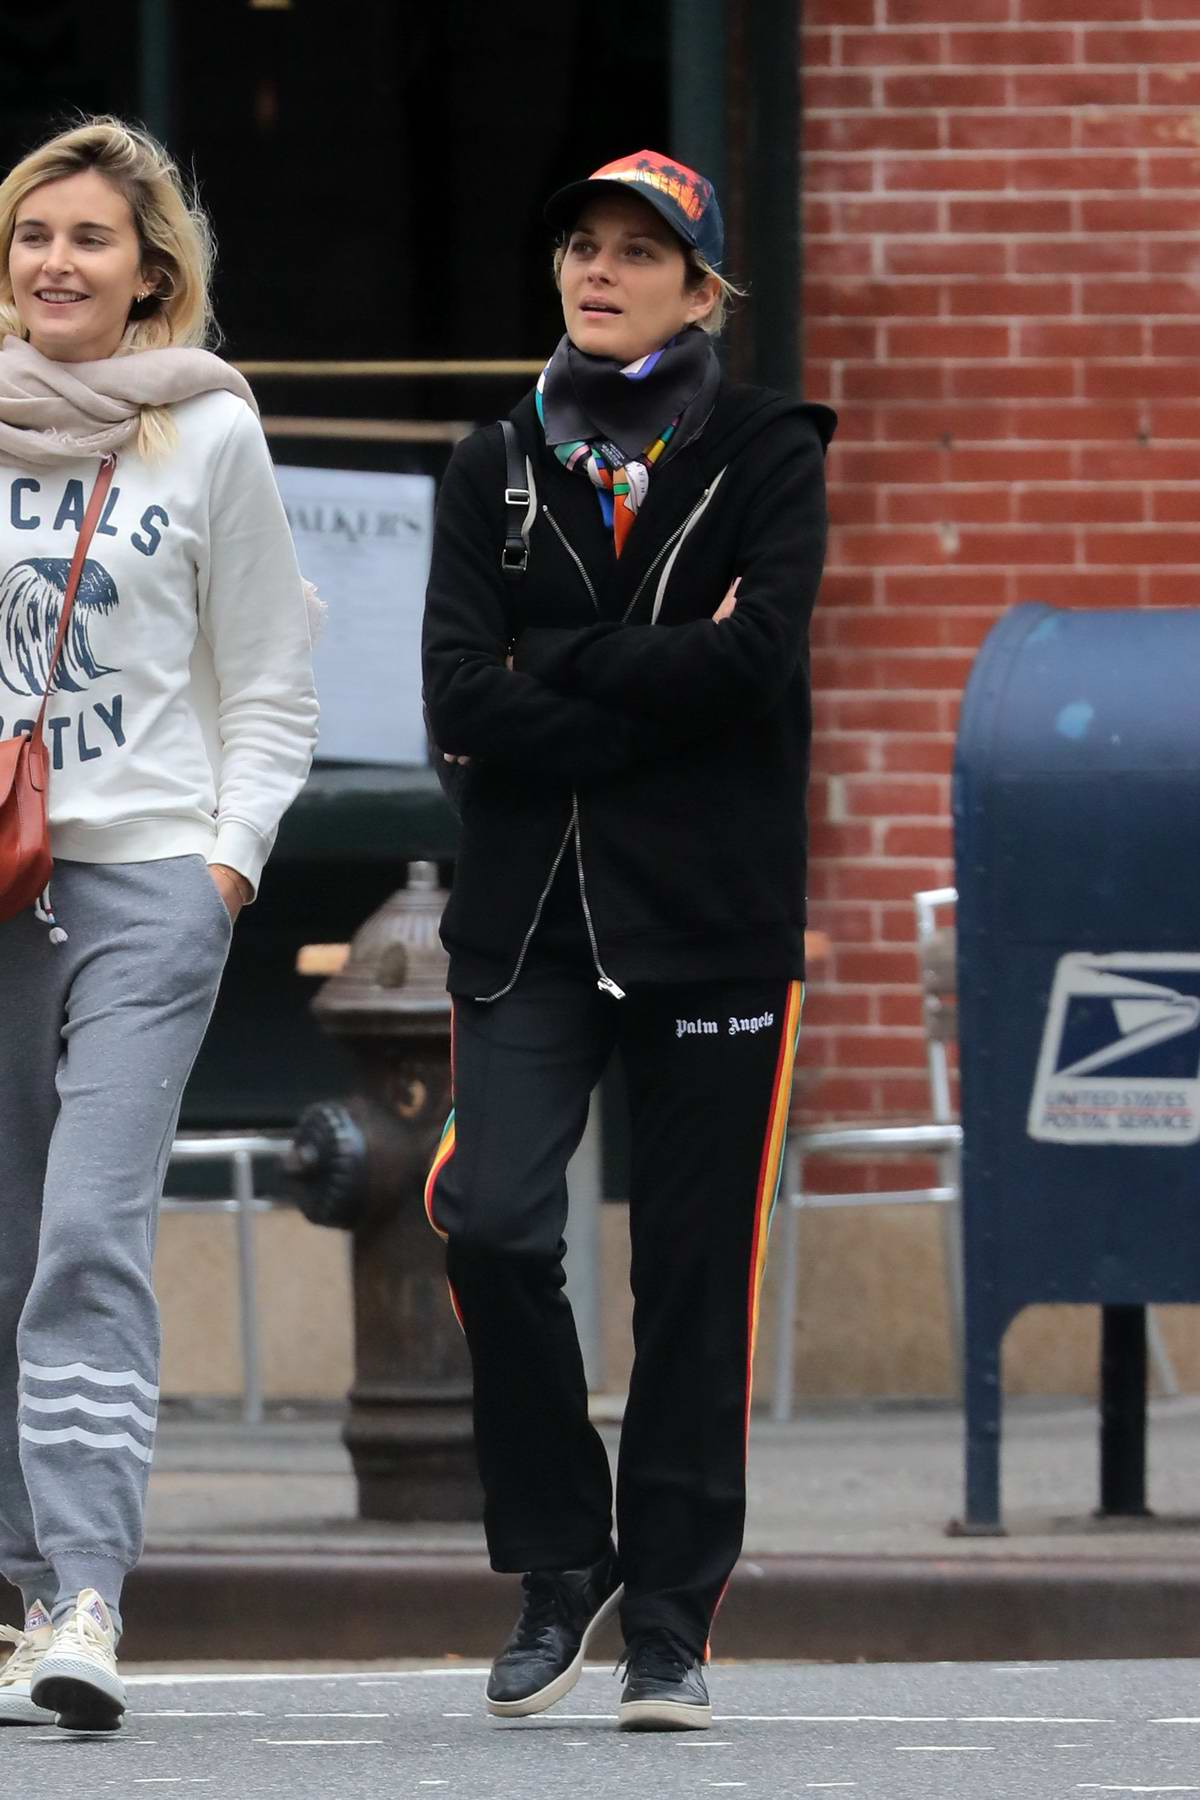 Marion Cotillard looks casual as she goes shopping with a friend in New York City